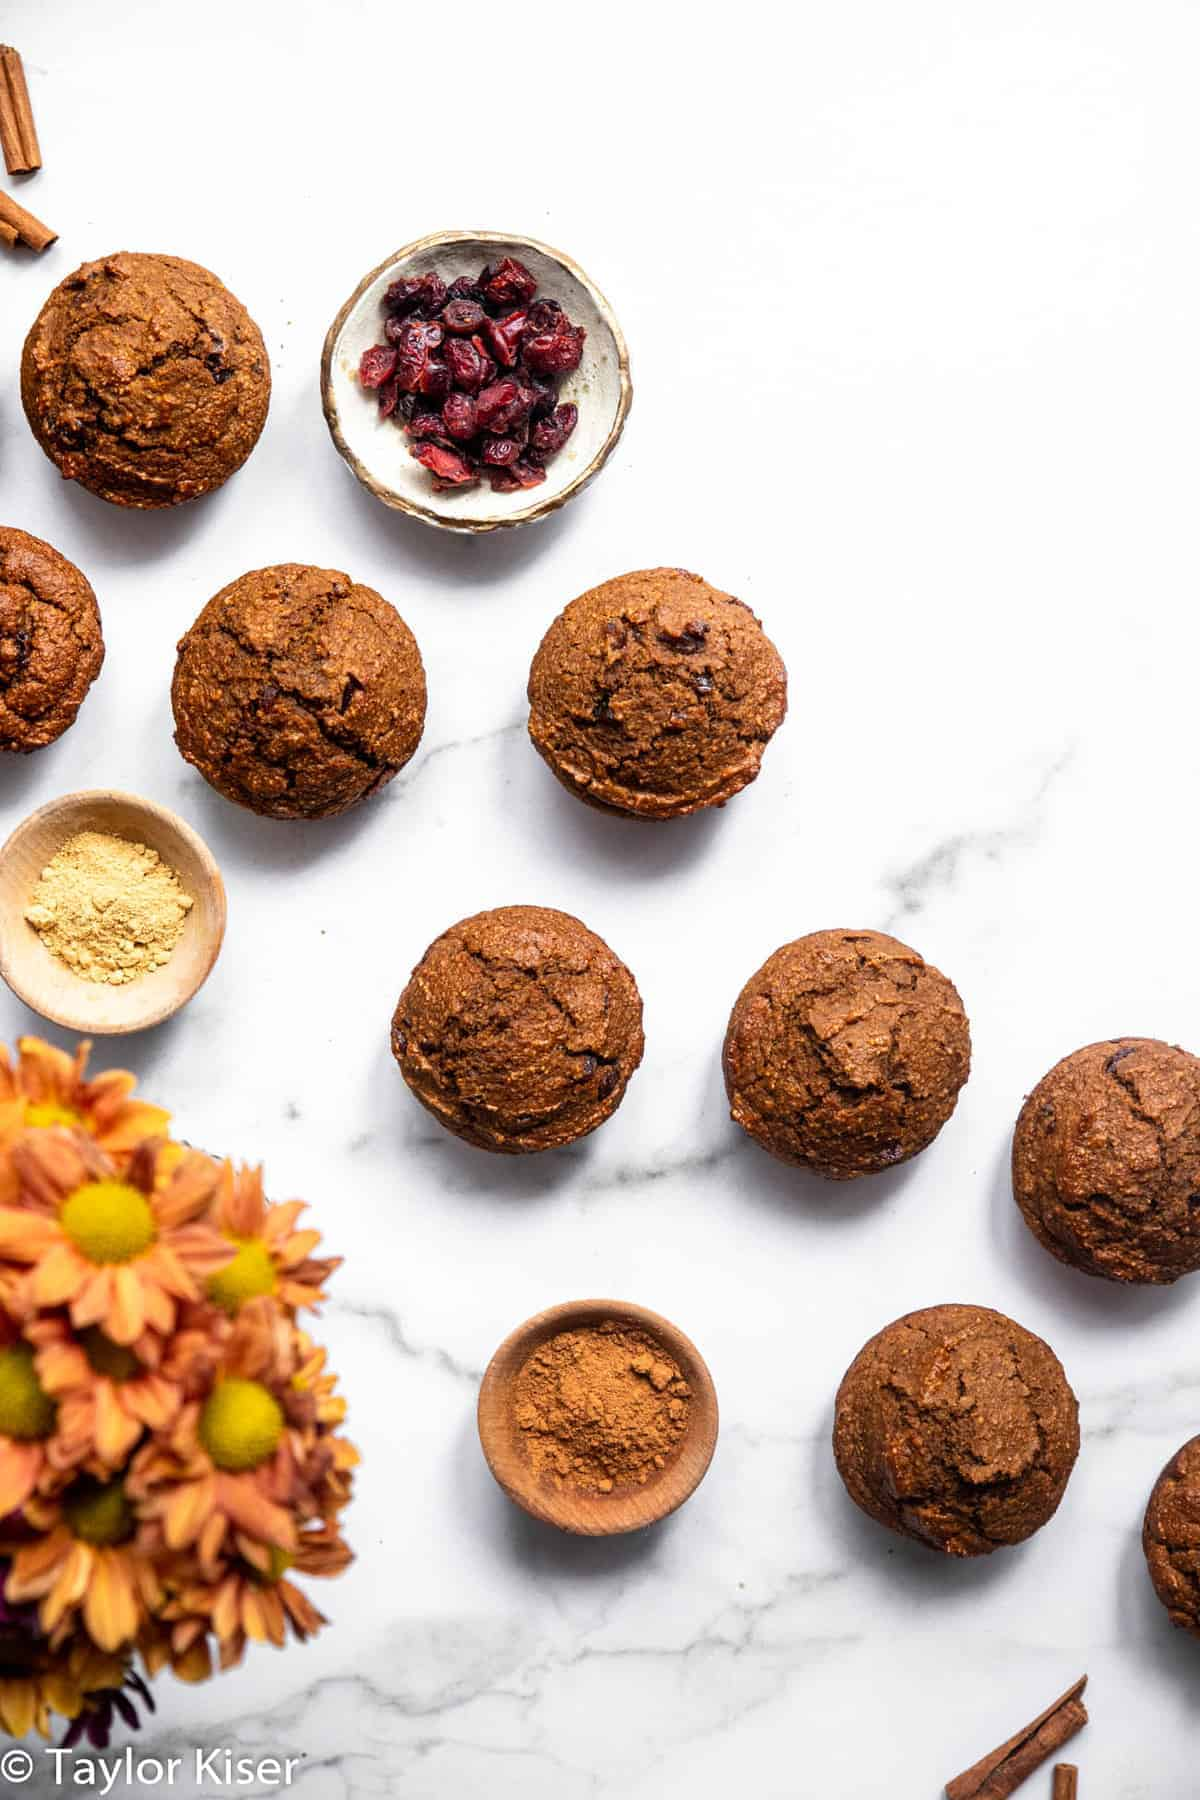 the tops of healthy pumpkin muffins on a table with flowers